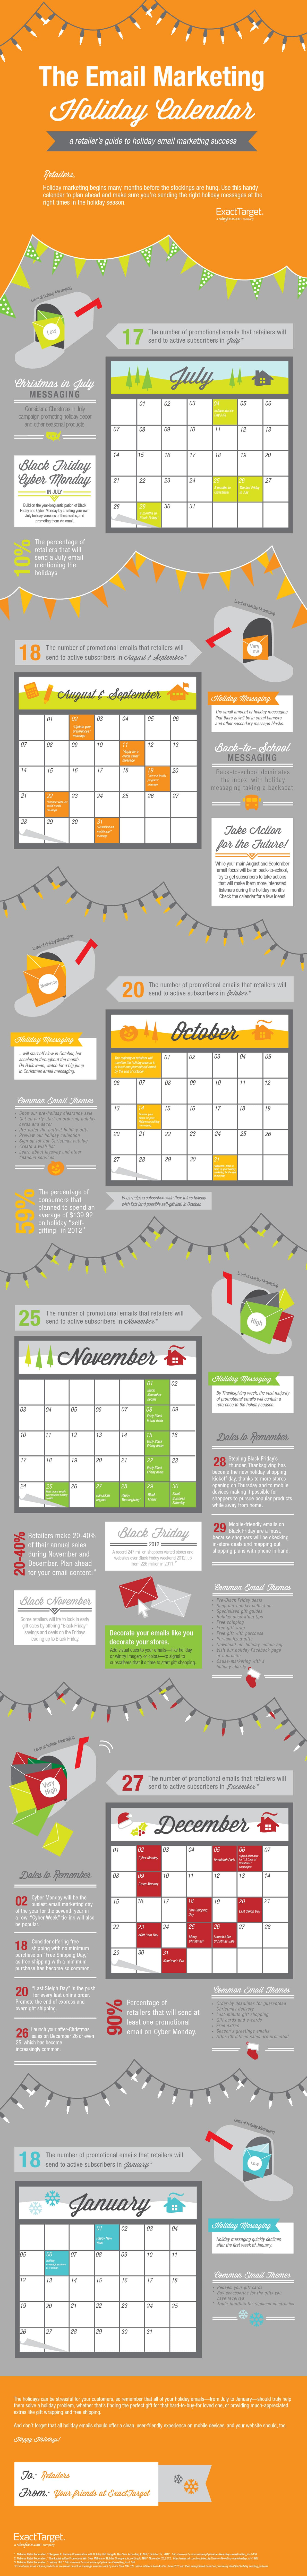 Holidays In August: A Holiday Email Marketing Schedule [Infographic]